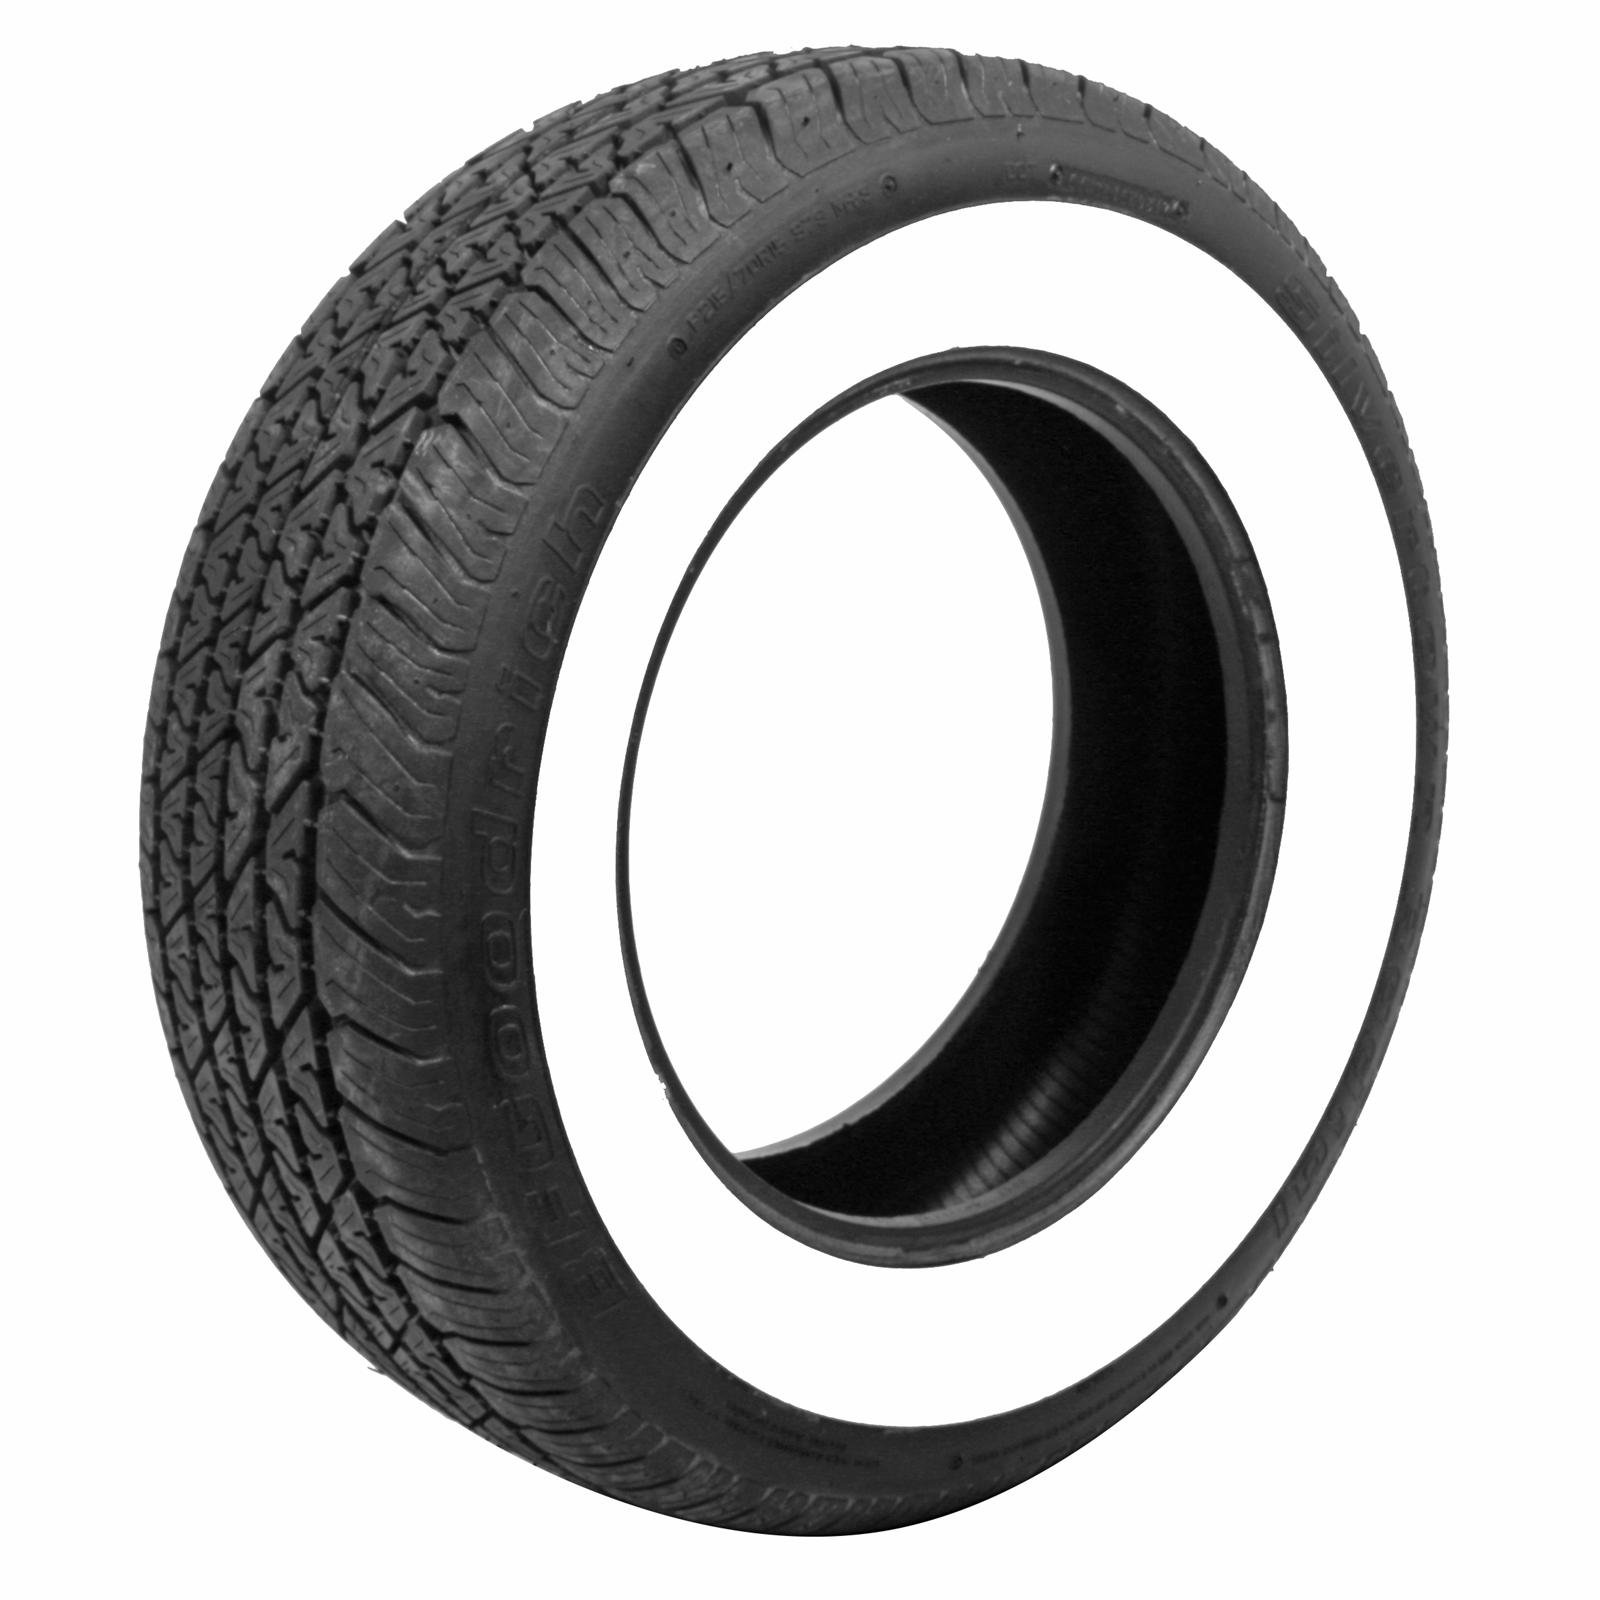 coker bfgoodrich silvertown radial tires free shipping on orders over 99 at summit racing